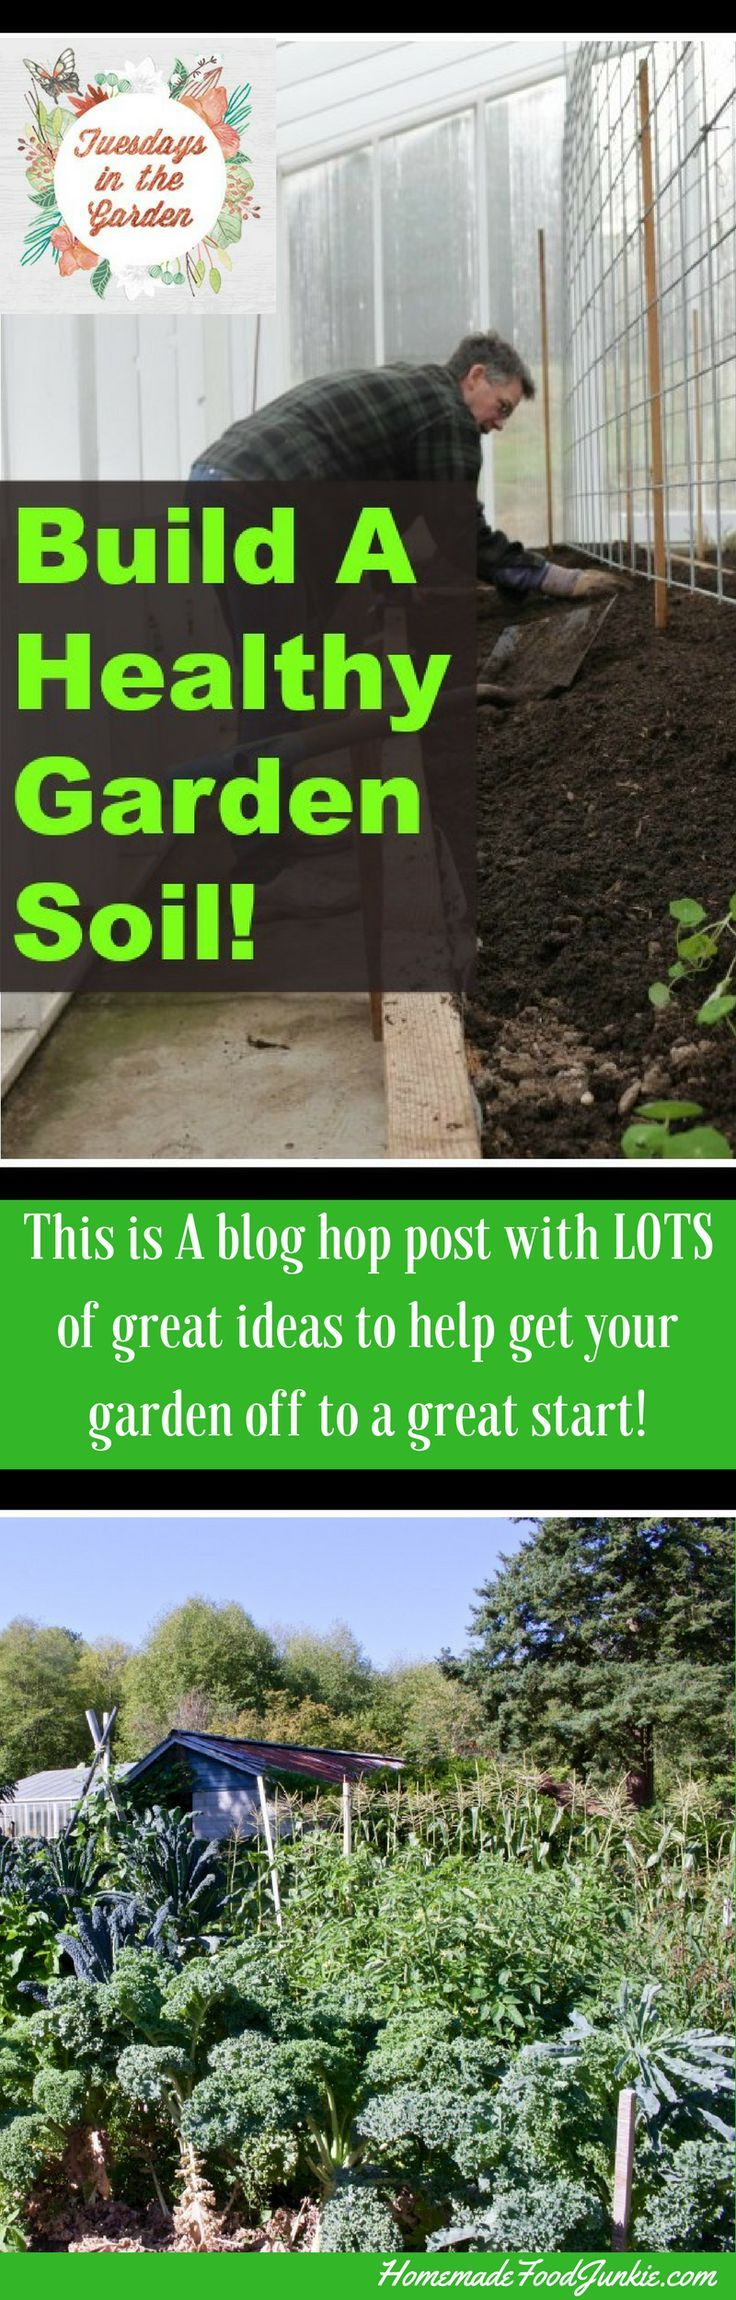 Build a Healthy Garden Soil to get your garden off to a good start. This blog hop has lots o tips for good garden techniques that will help you out!